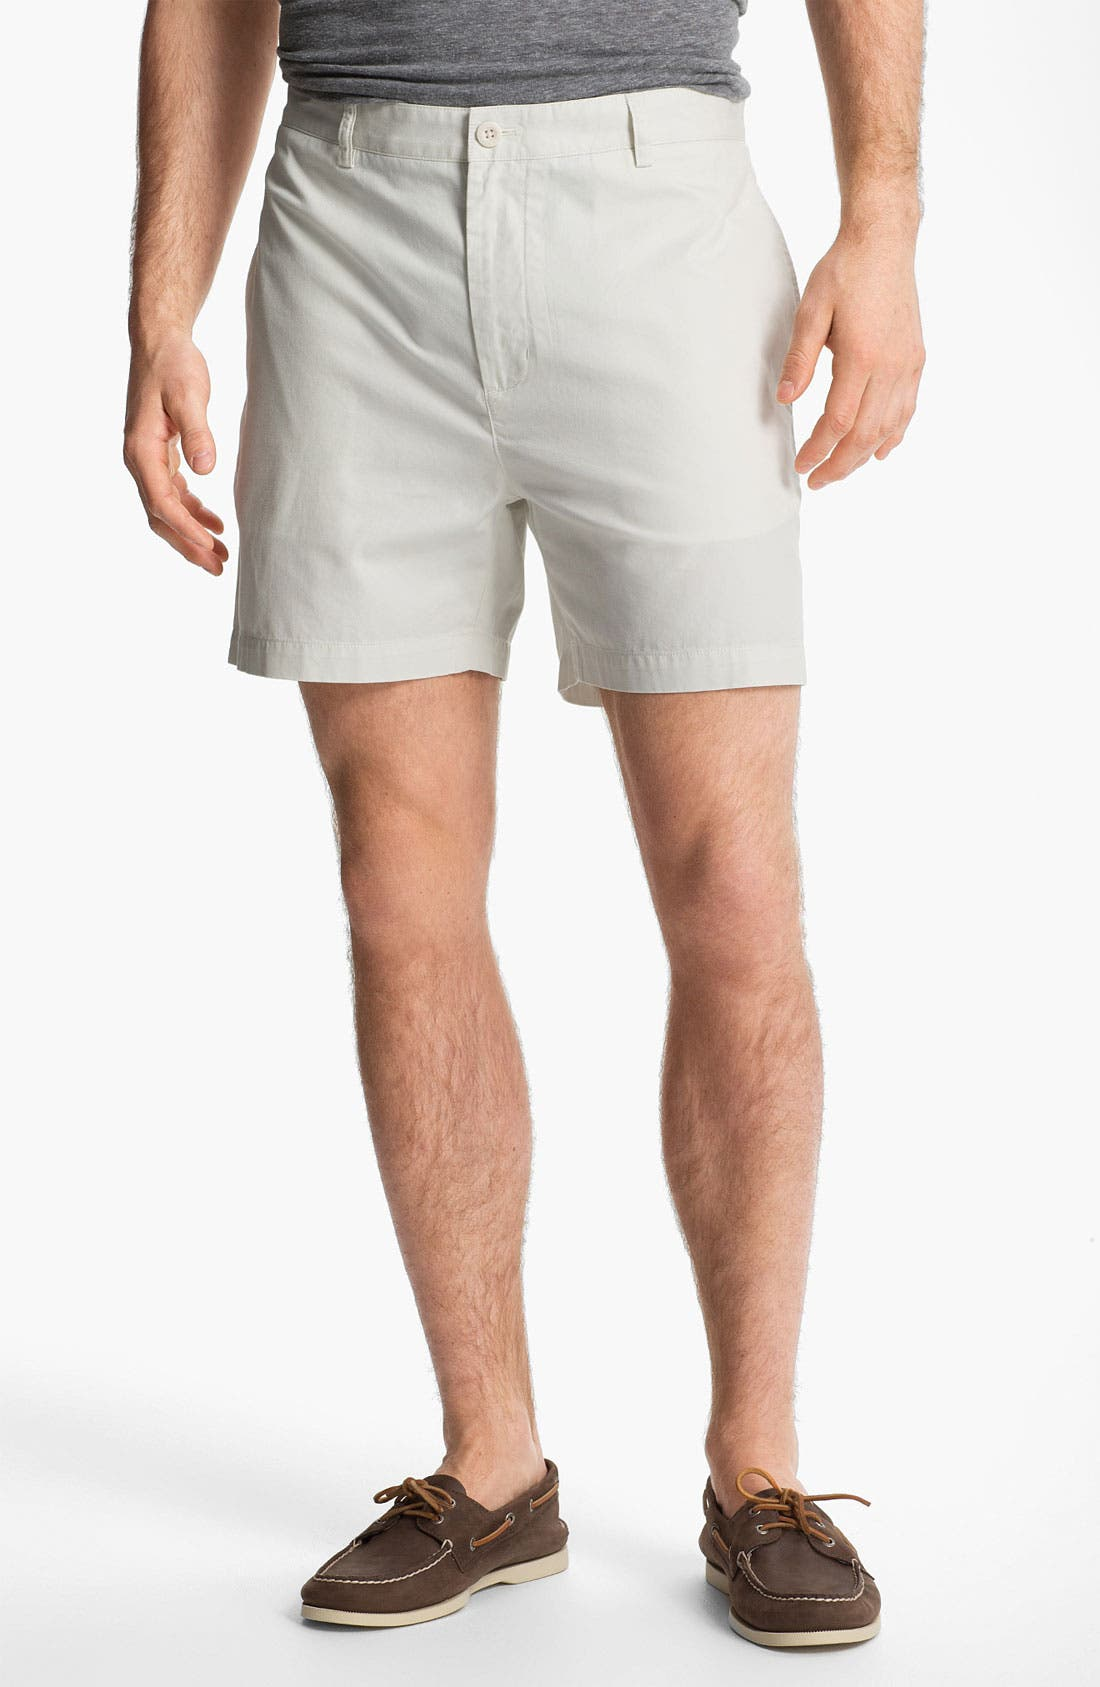 Alternate Image 1 Selected - Vineyard Vines 'Summer Club' Twill Shorts